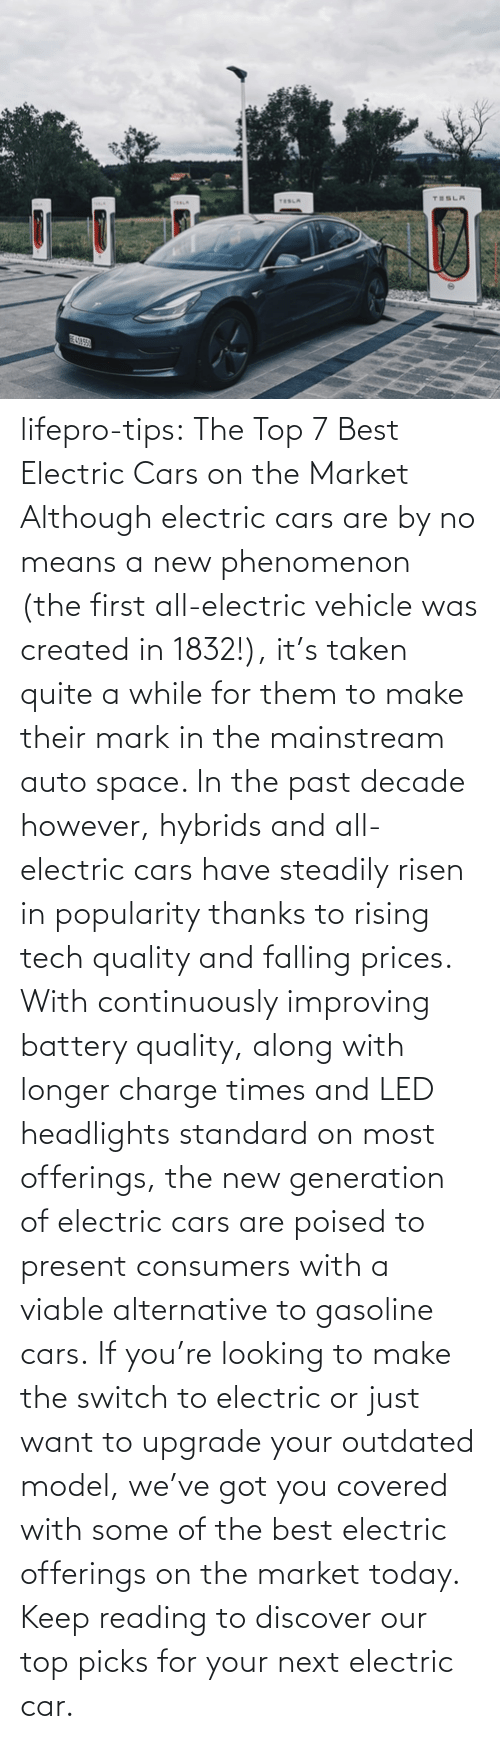 The Past: lifepro-tips: The Top 7 Best Electric Cars on the Market   Although electric cars are by no means a new phenomenon (the first all-electric vehicle was created in 1832!), it's taken quite a while for them to make their mark in the mainstream auto space. In the past decade however, hybrids and all-electric cars have steadily risen in popularity thanks to rising tech quality and falling prices. With continuously improving battery quality, along with longer charge times and LED headlights standard on most offerings, the new generation of electric cars are poised to present consumers with a viable alternative to gasoline cars. If you're looking to make the switch to electric or just want to upgrade your outdated model, we've got you covered with some of the best electric offerings on the market today. Keep reading to discover our top picks for your next electric car.